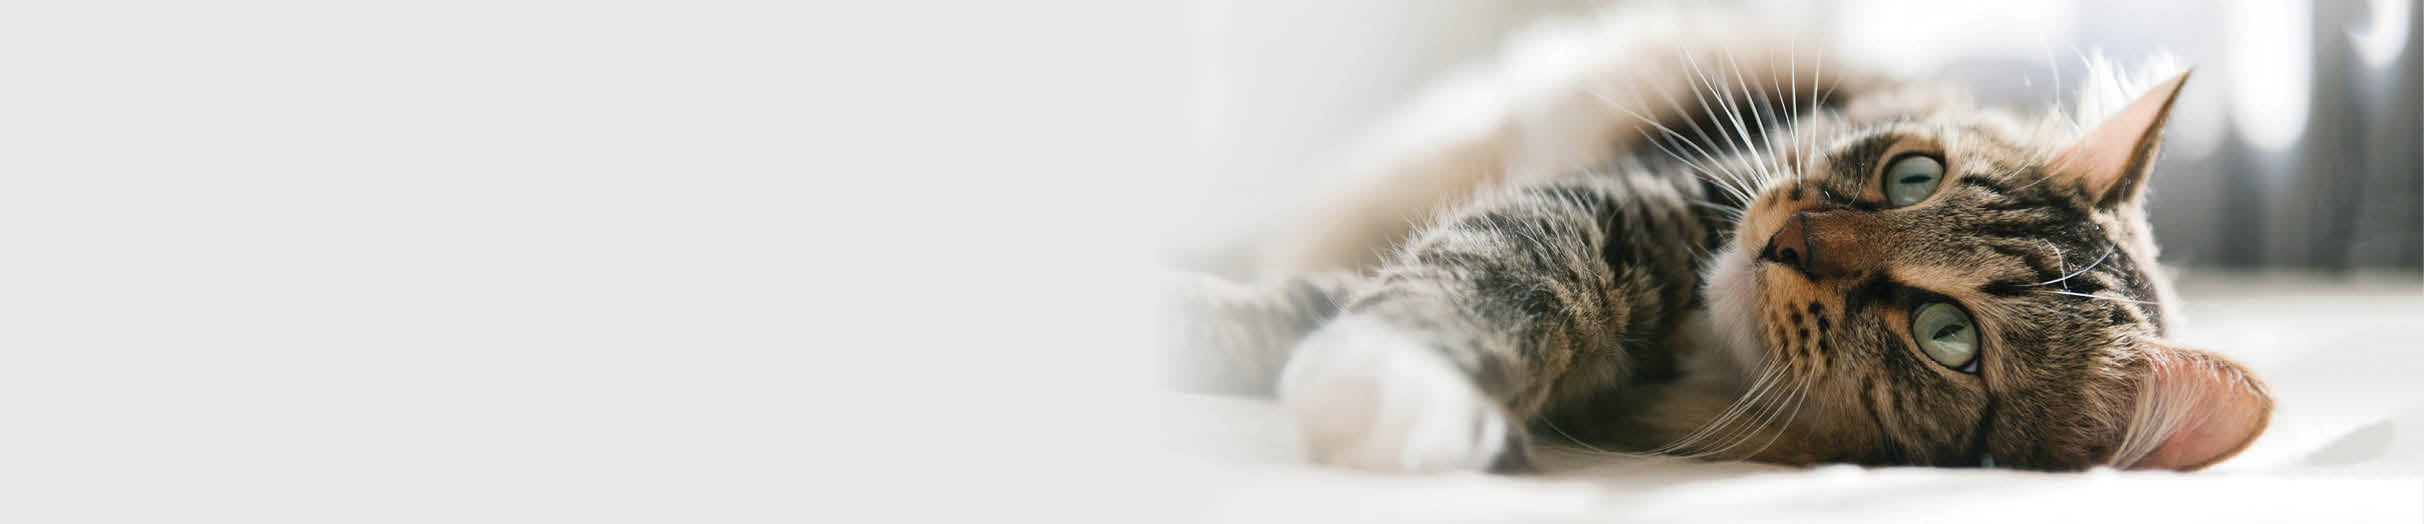 Buy cat food, treatments and products online.